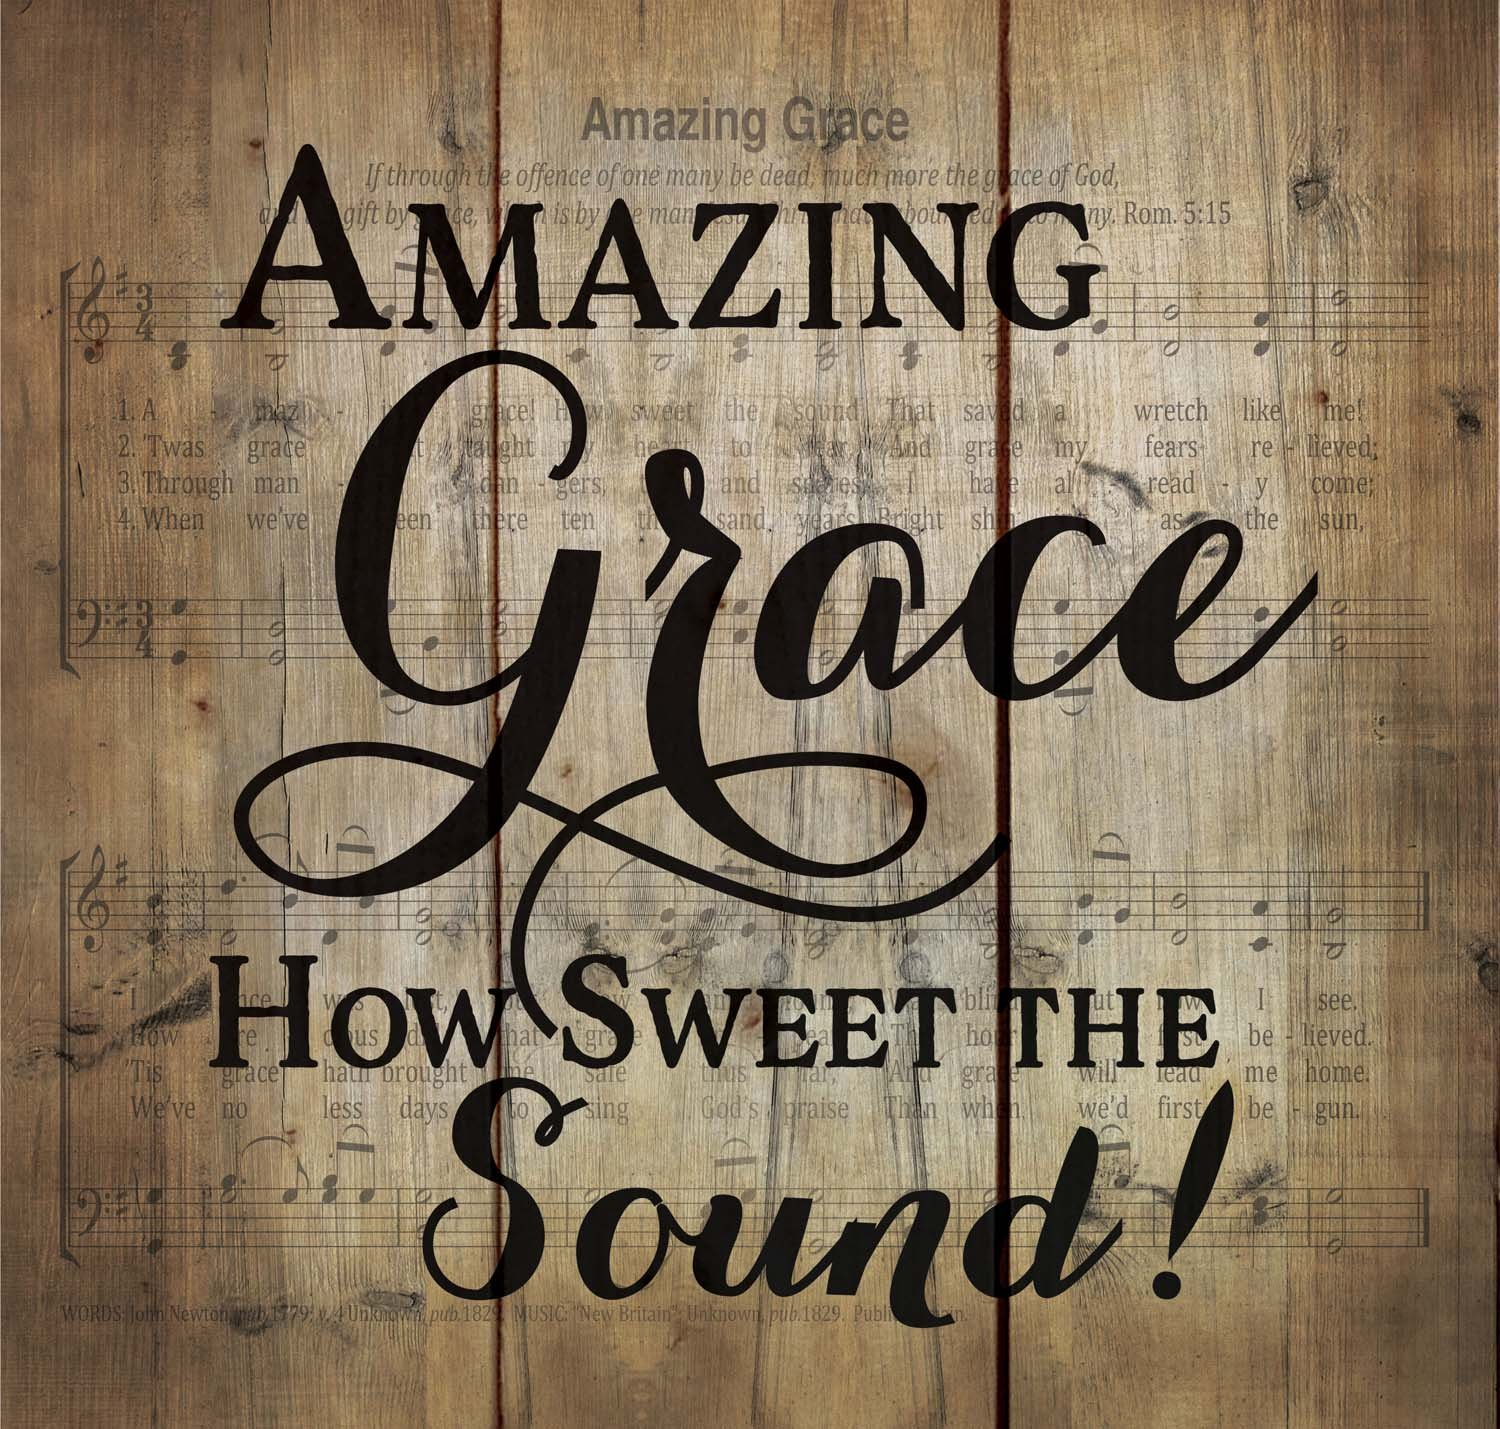 Amazing Grace Old Fashion Hymn Sheet Music Design 10 x 11 Wood Pallet Wall Art Sign Plaque